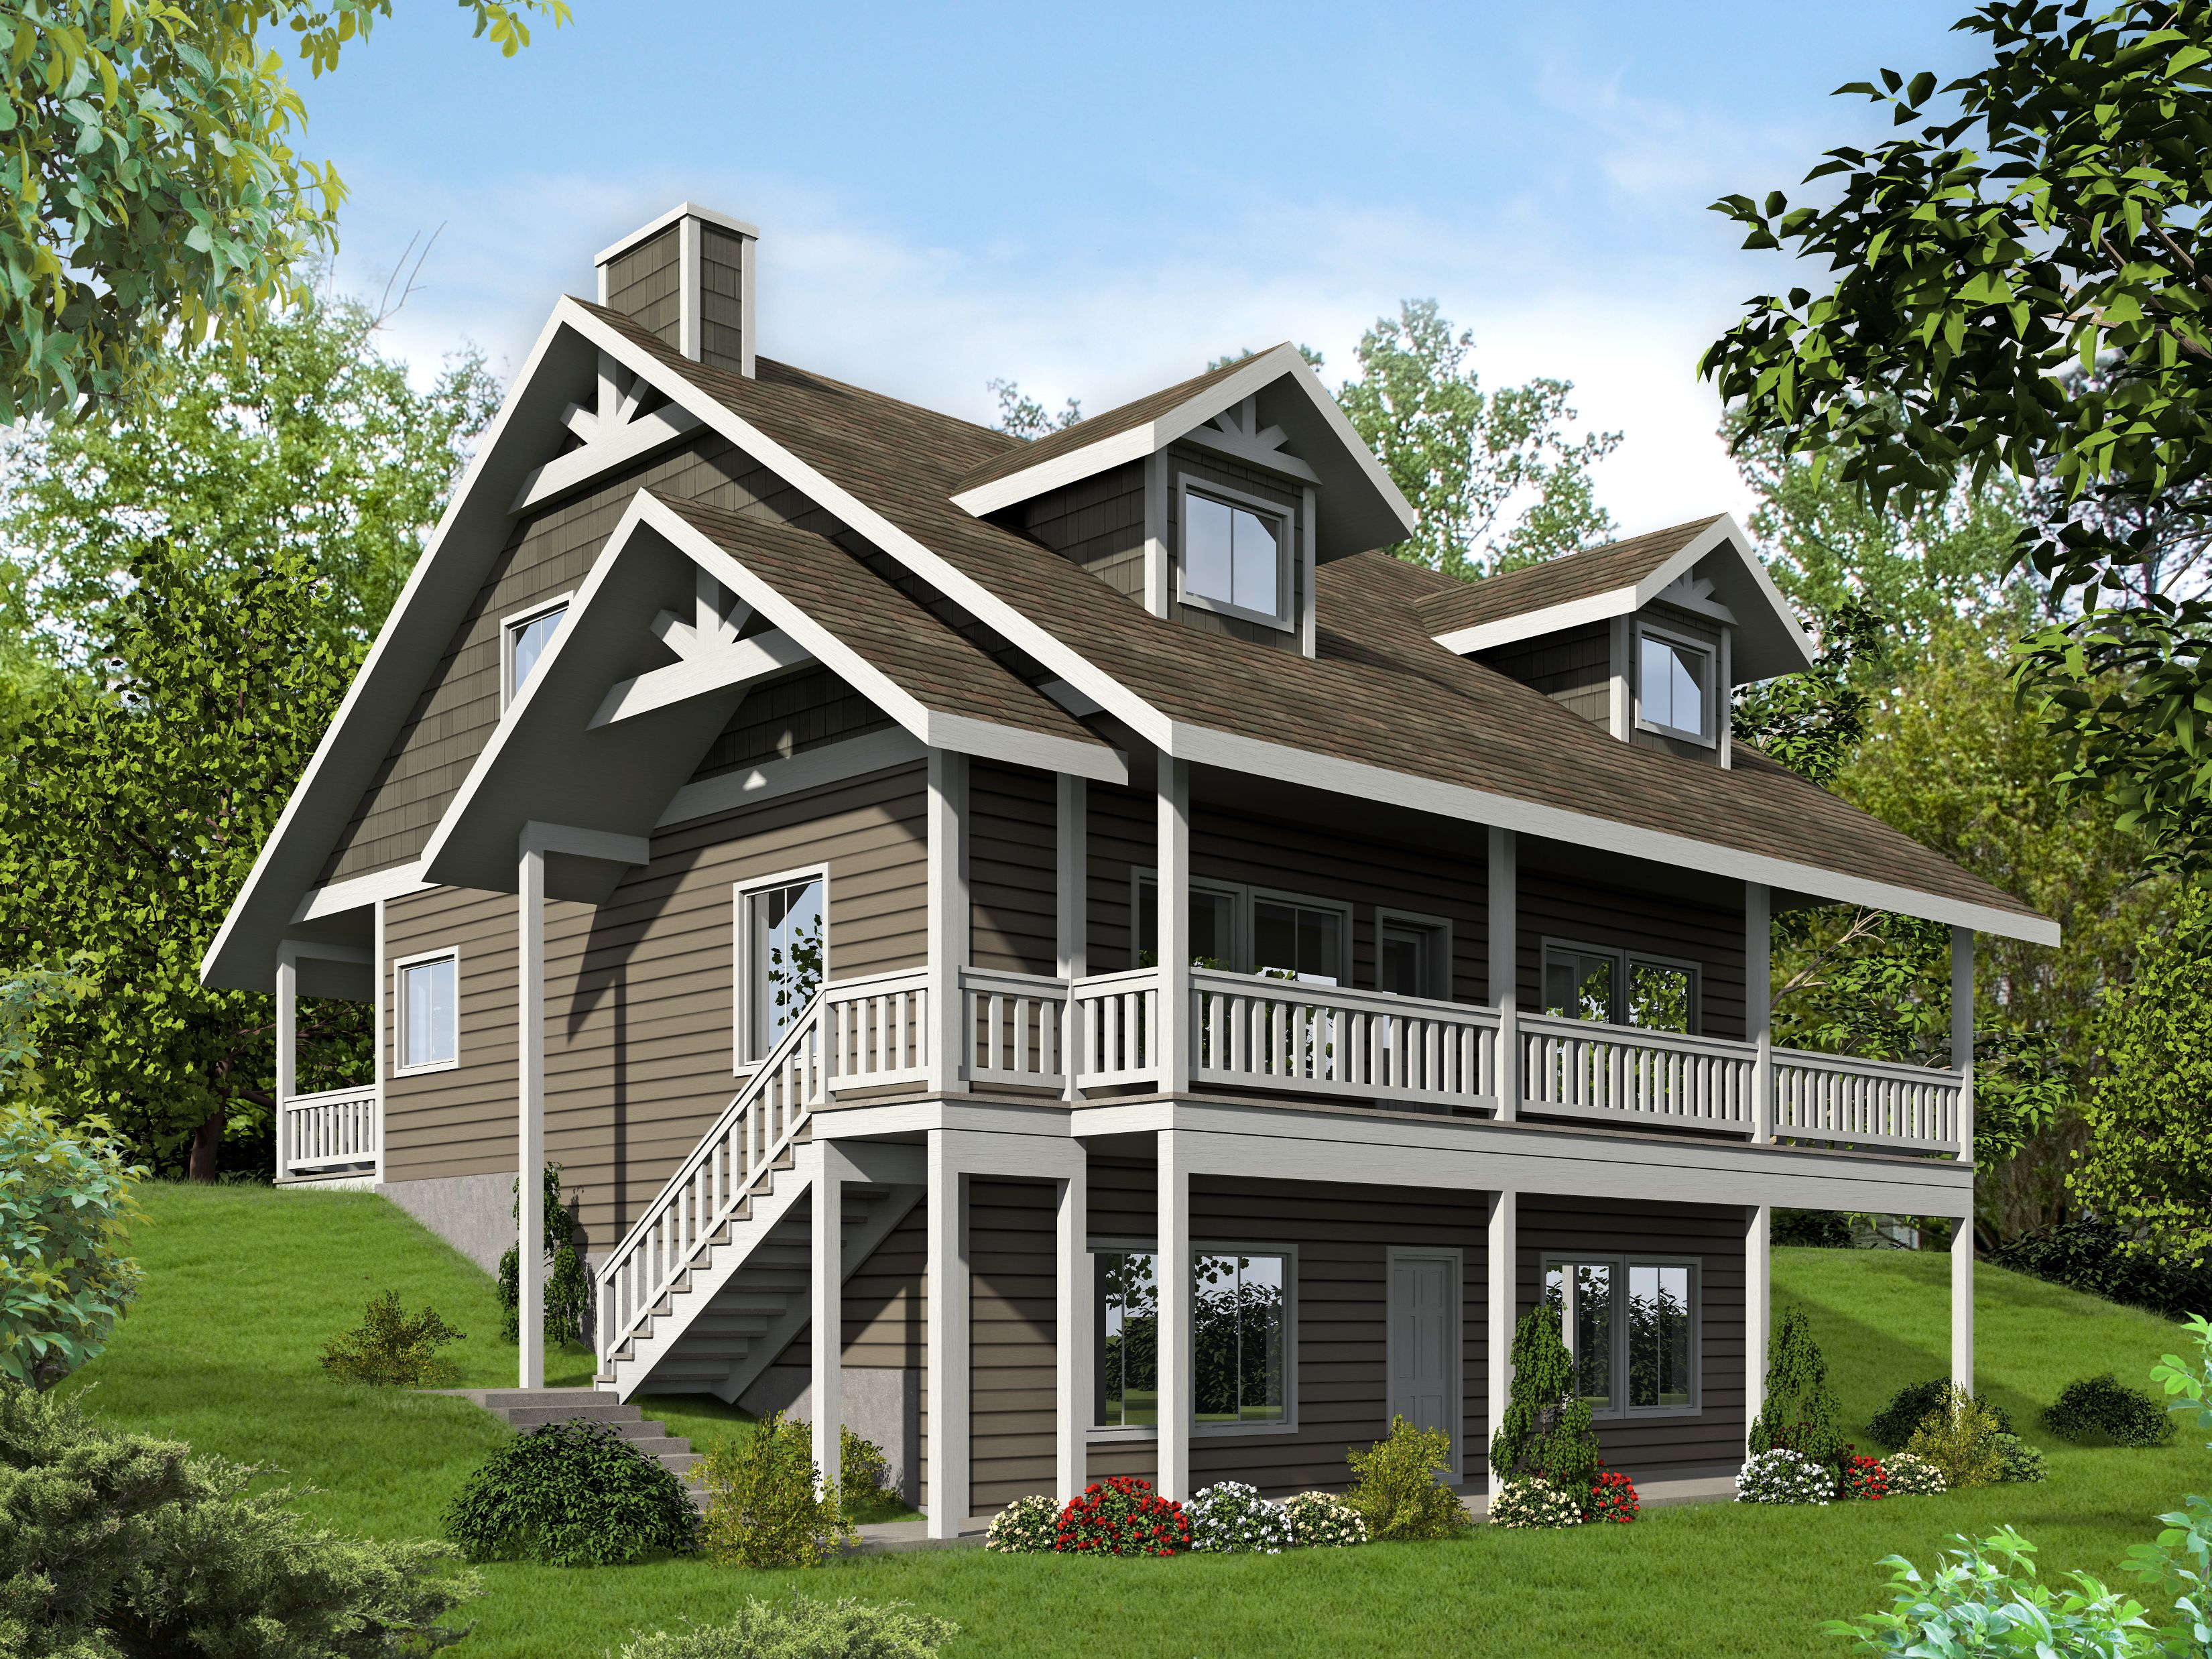 Plan 35507gh porches front and back walkout basement for Mountain house media